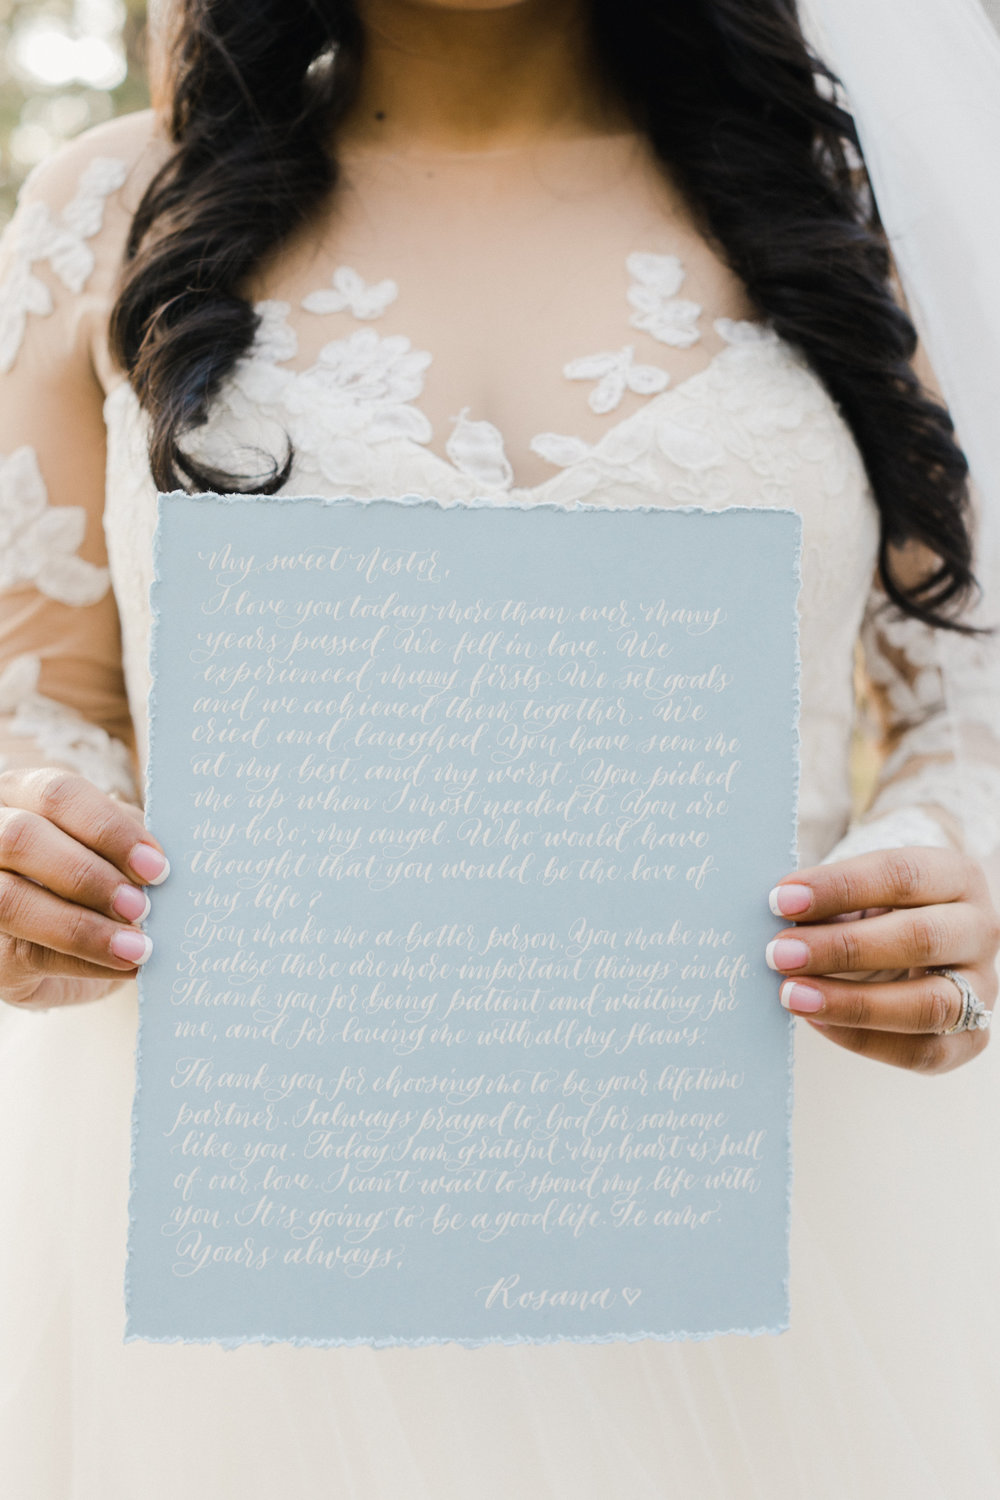 Yosemite wedding vows calligraphy items by paperloveme5.jpg